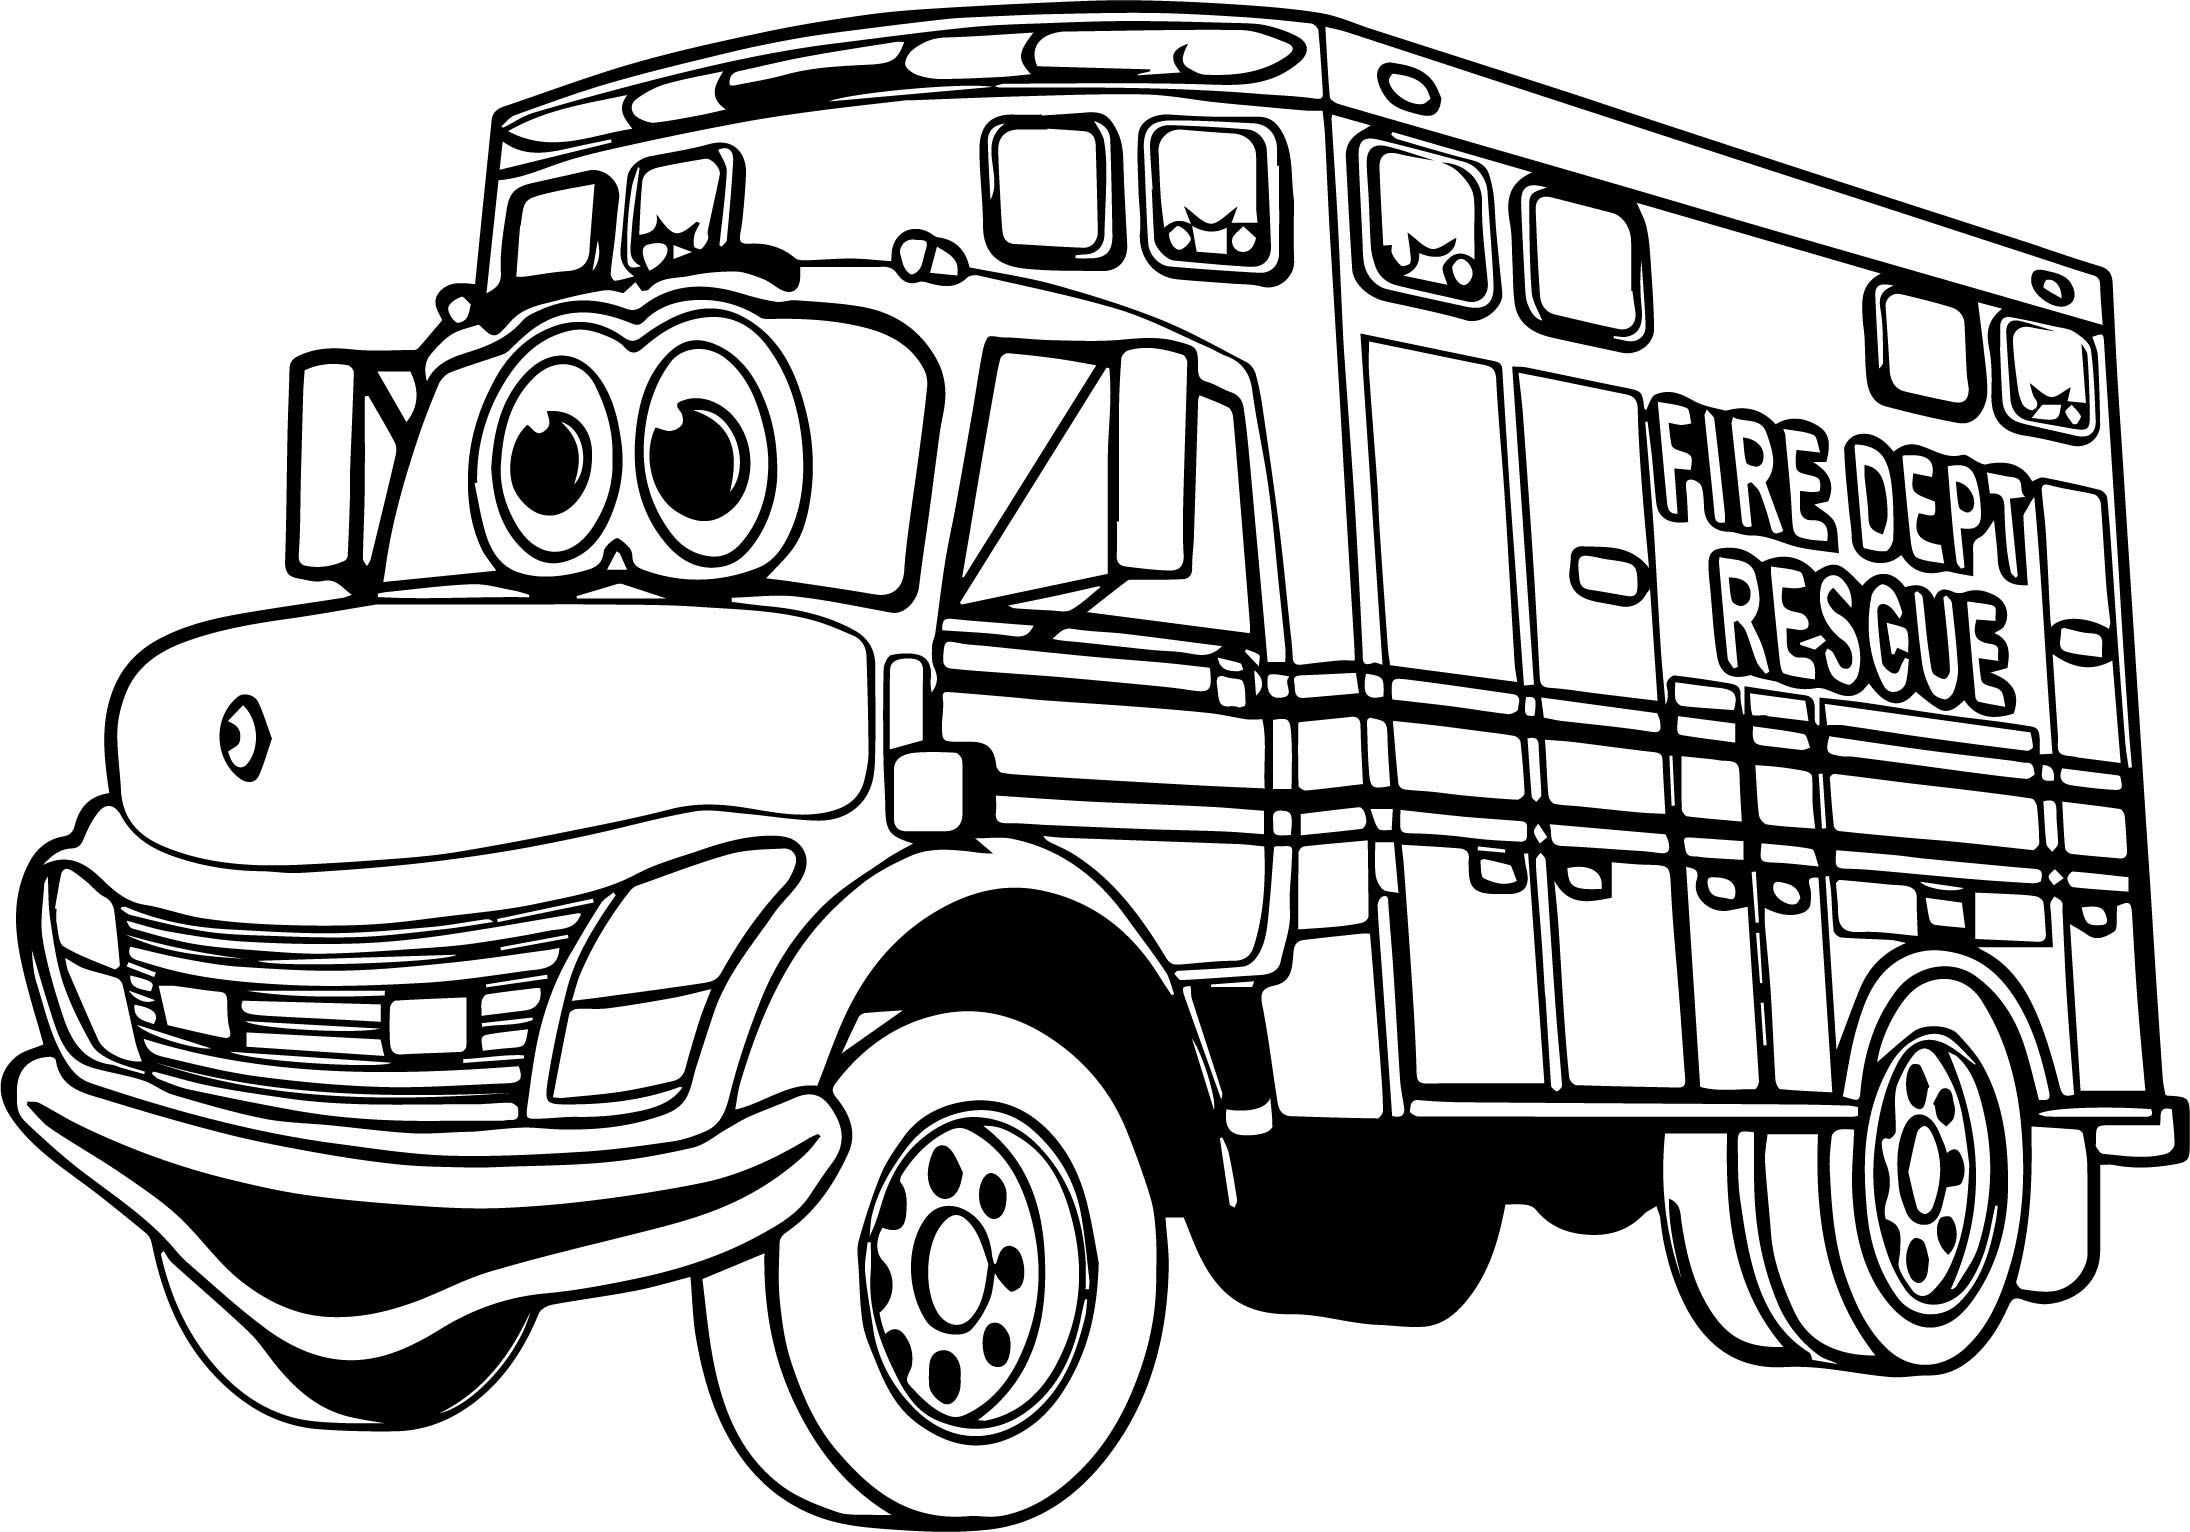 rescue truck coloring pages 9 best rescue vehicles coloring pages images on coloring pages truck rescue